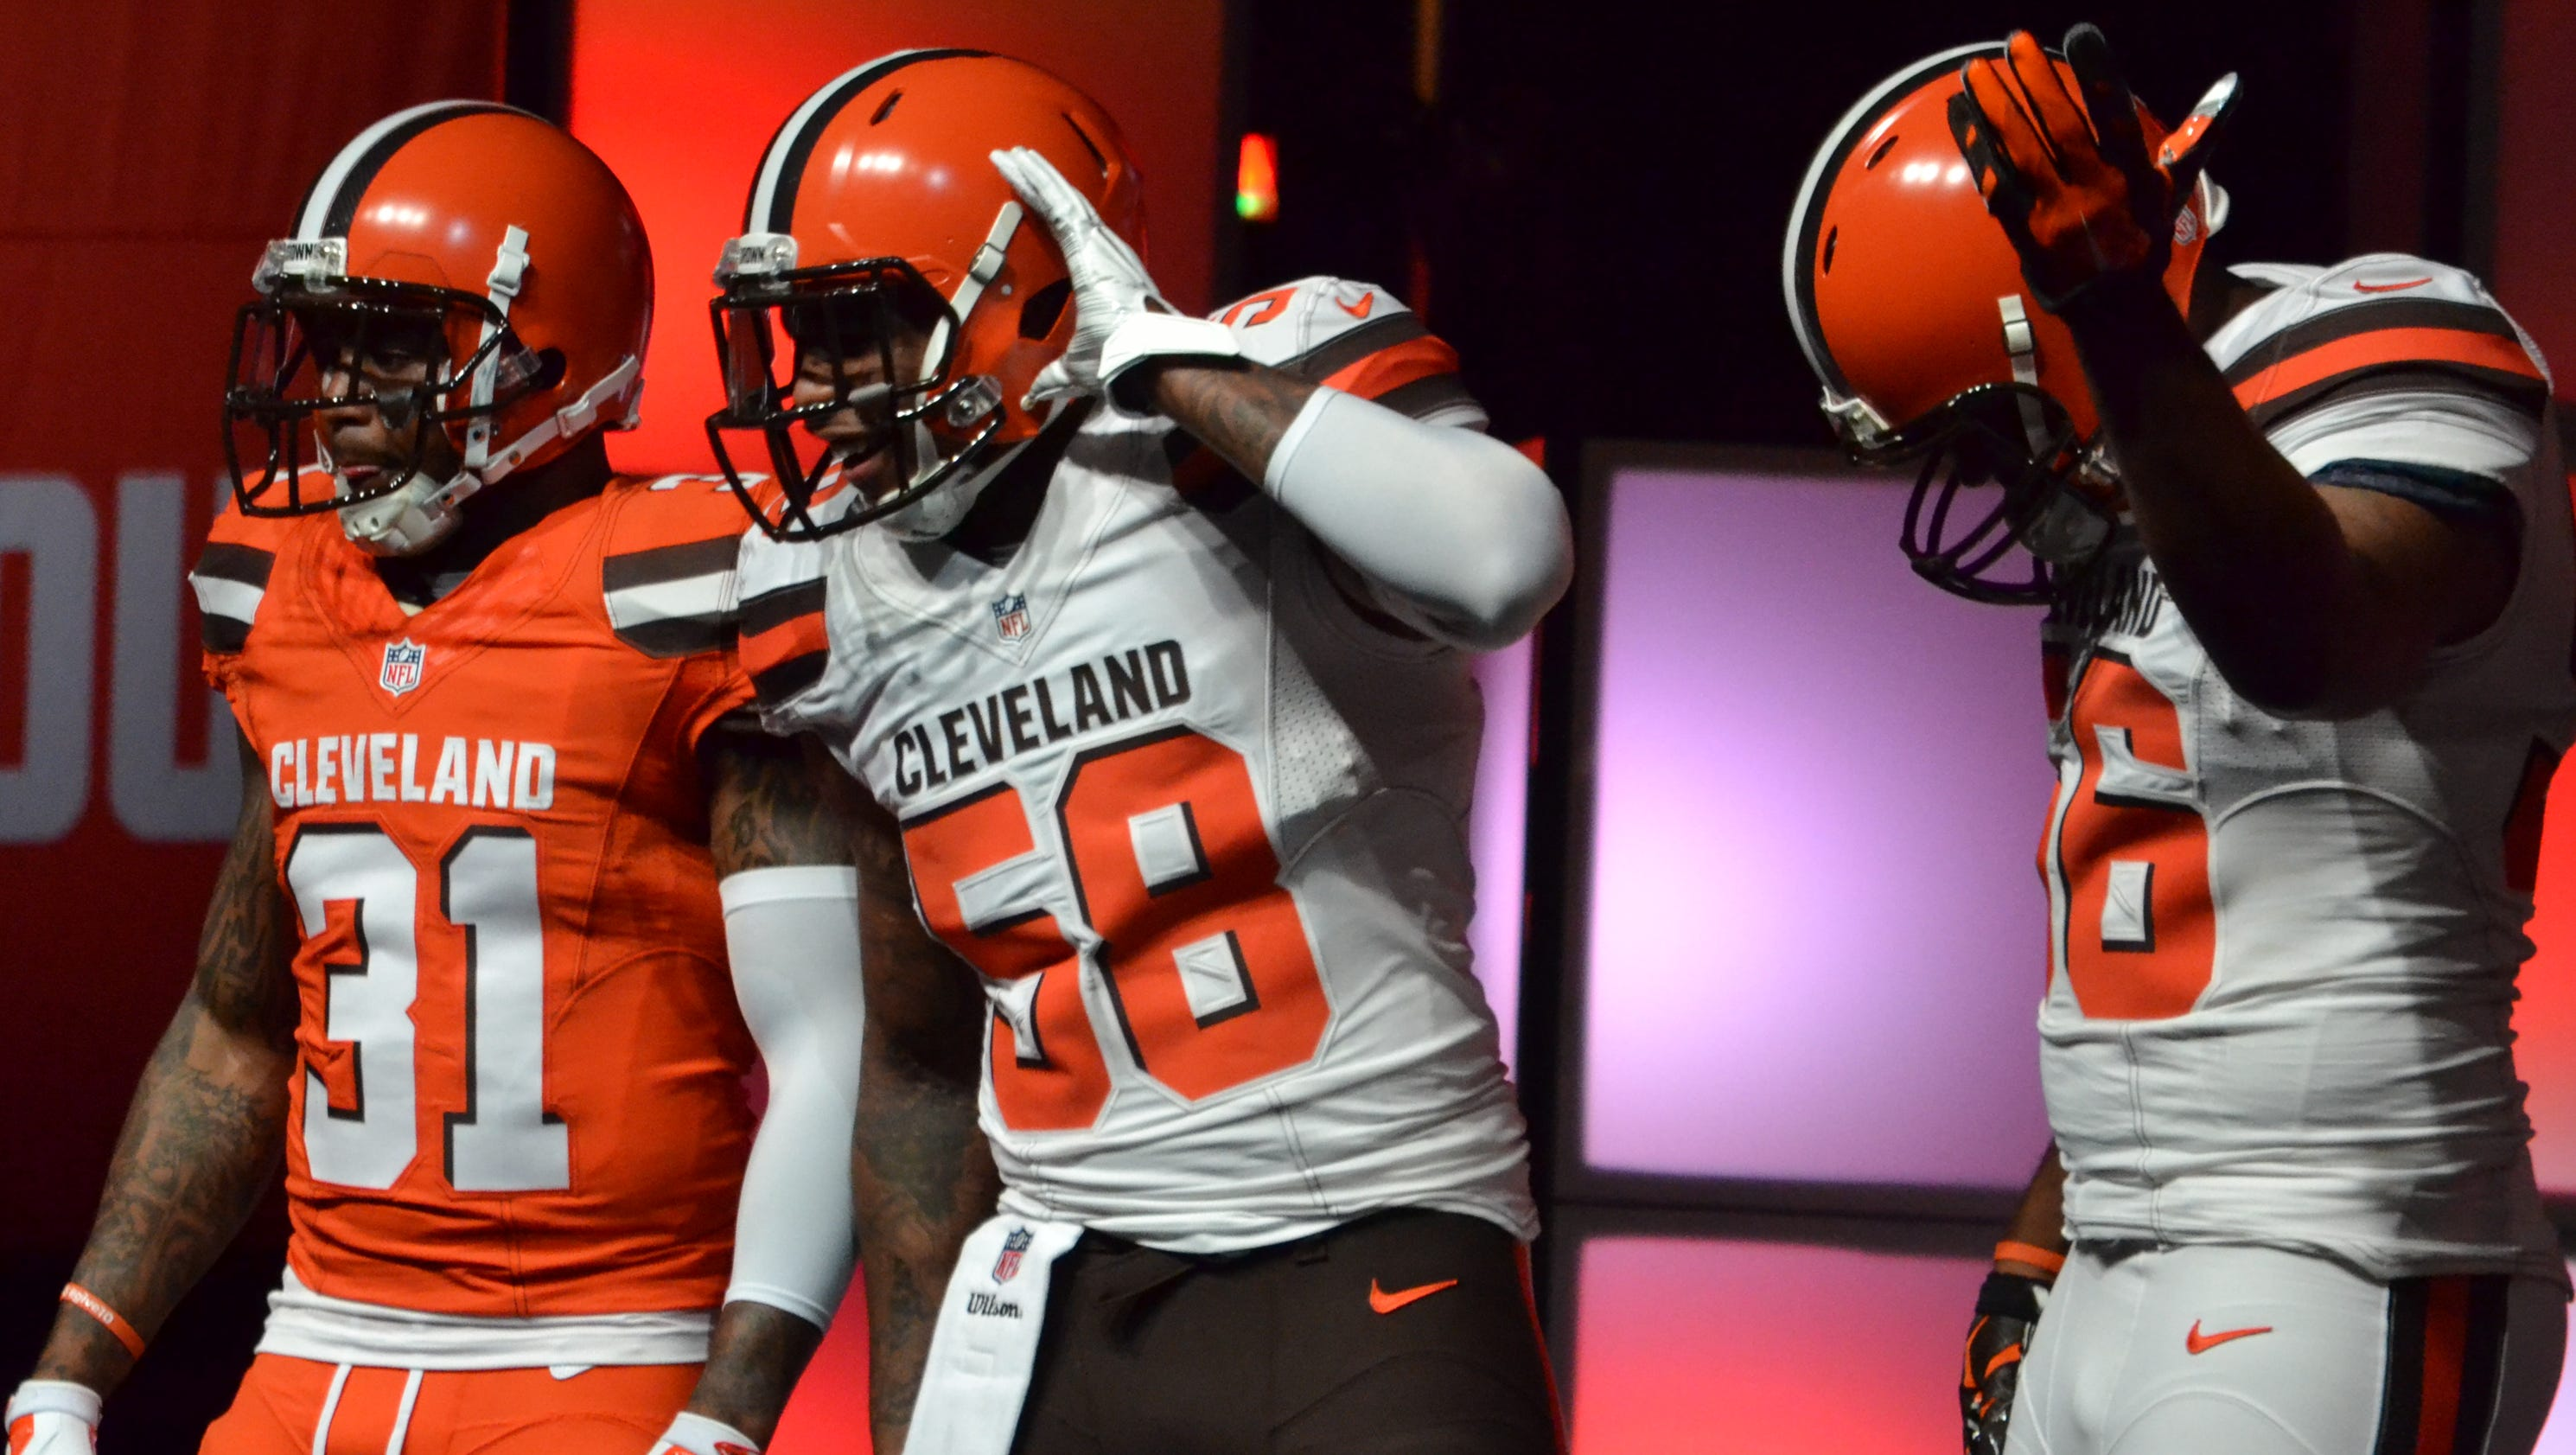 Cleveland Browns love their new look uniforms #BC350F